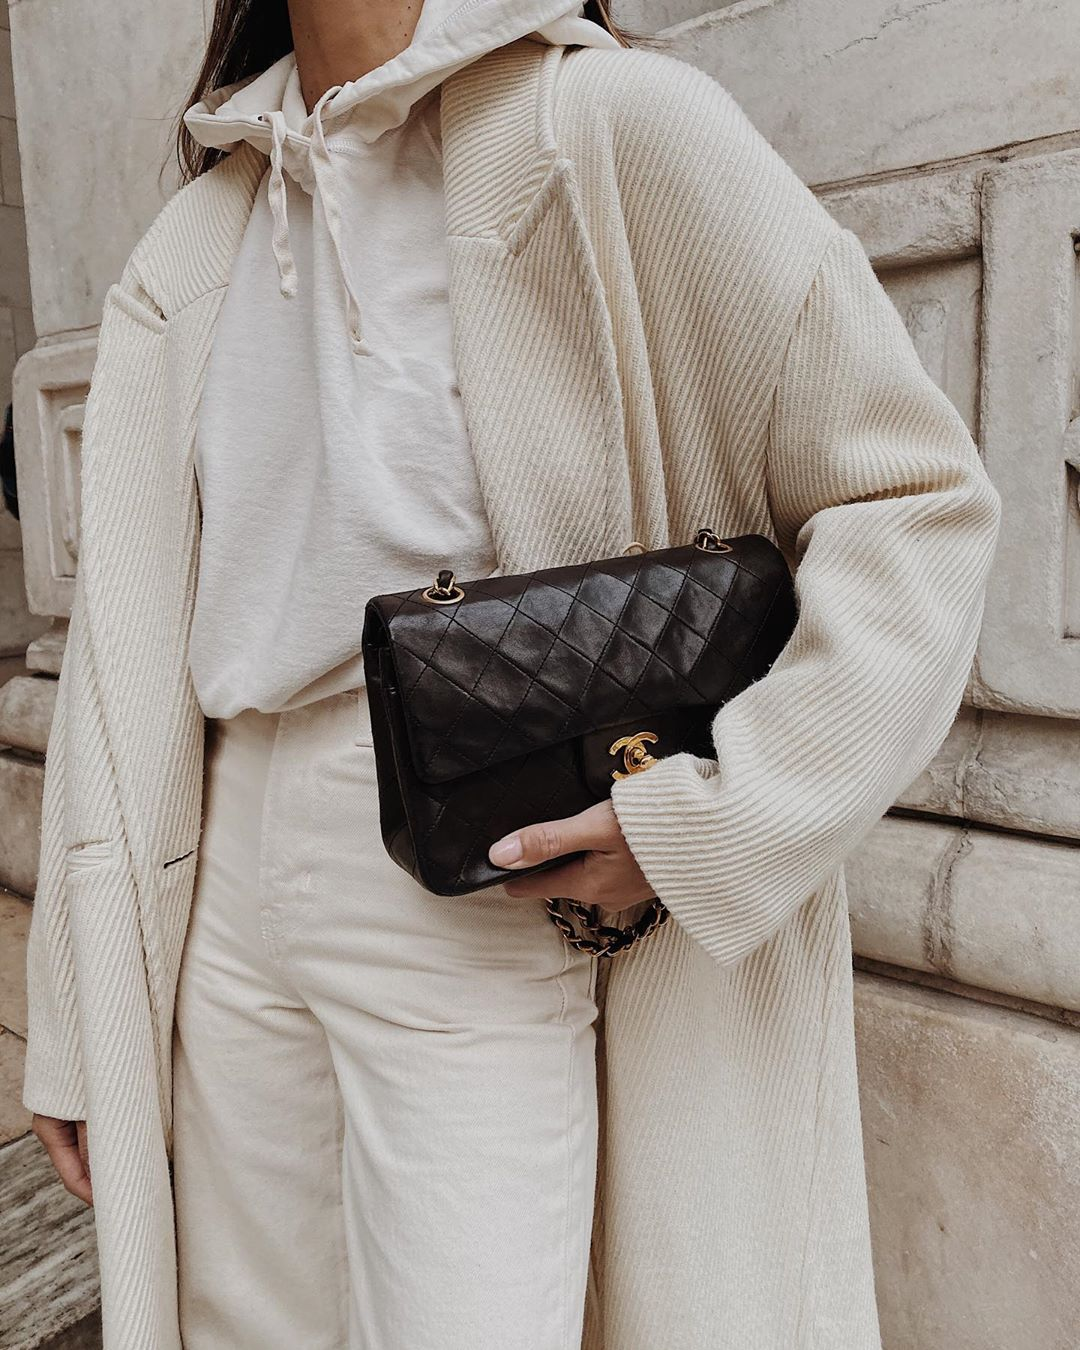 monochrome winter outfit